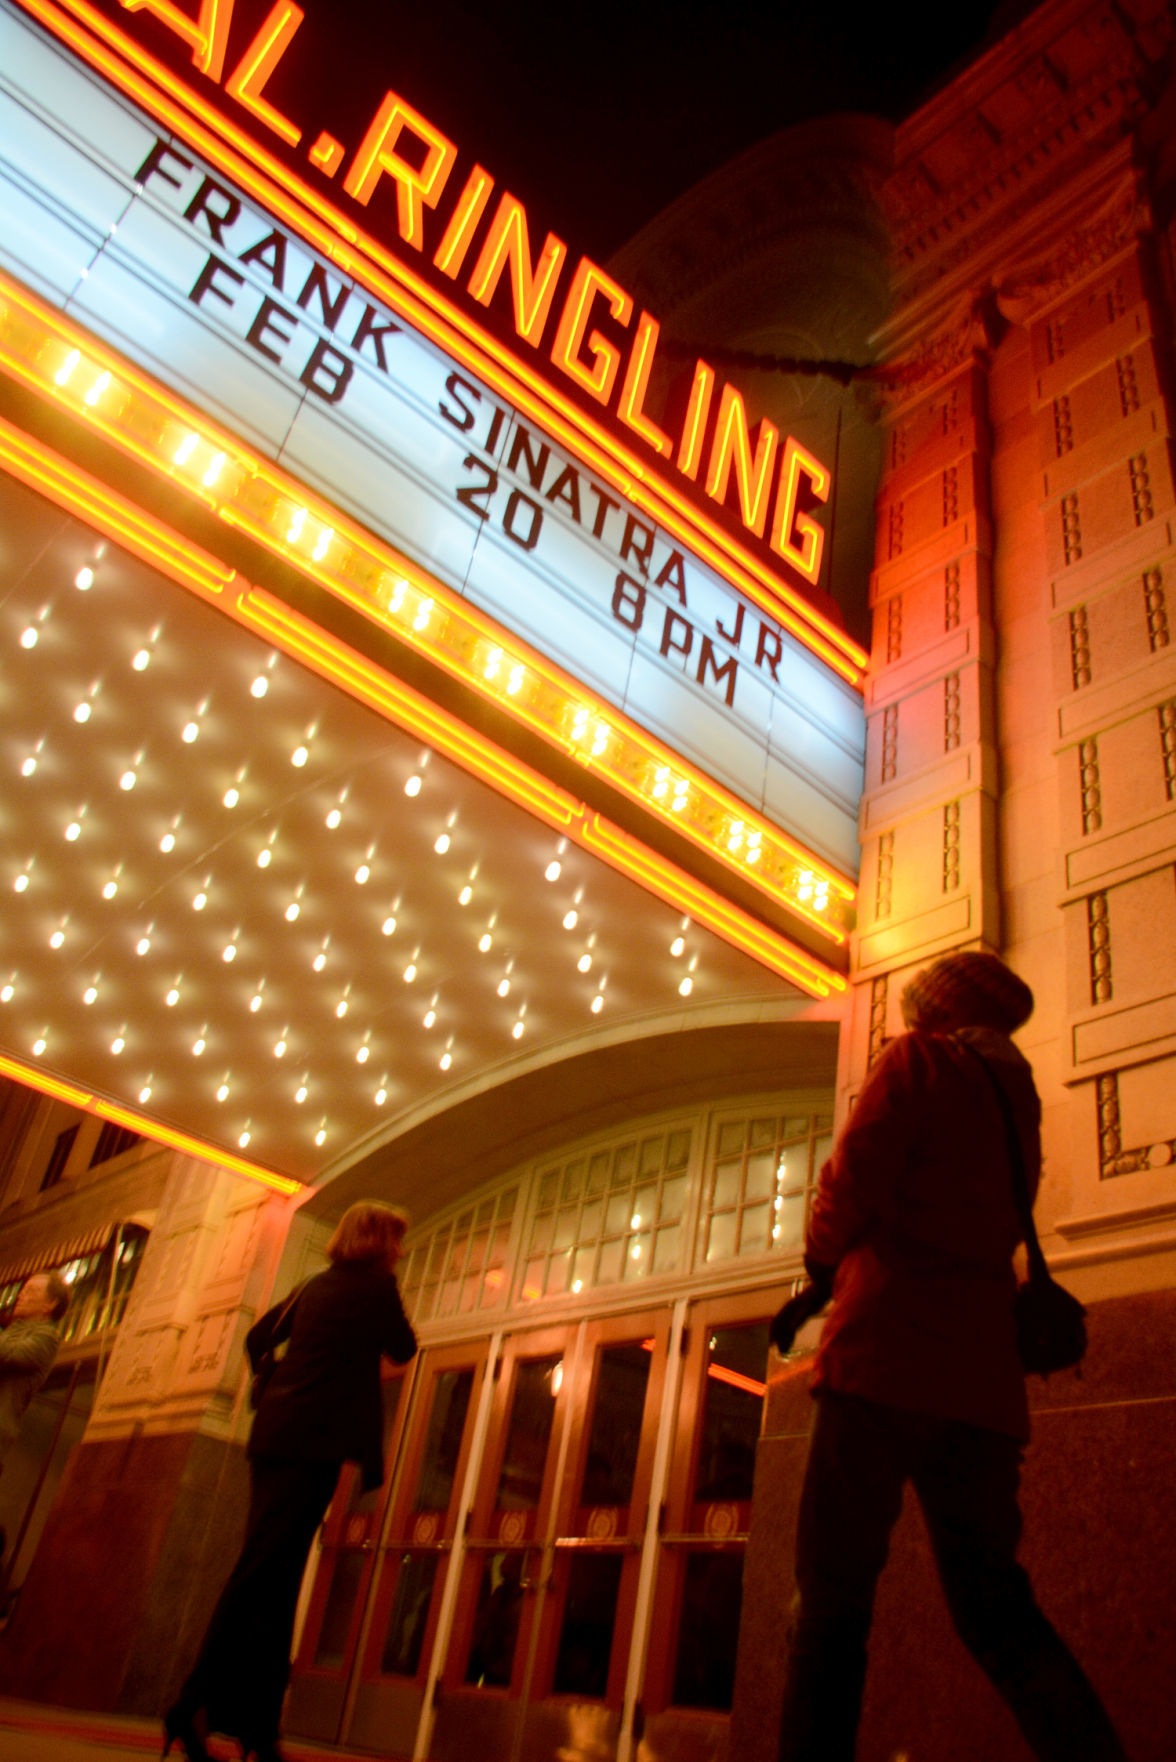 Old made new again: Theater makes dramatic return (copy) (copy)